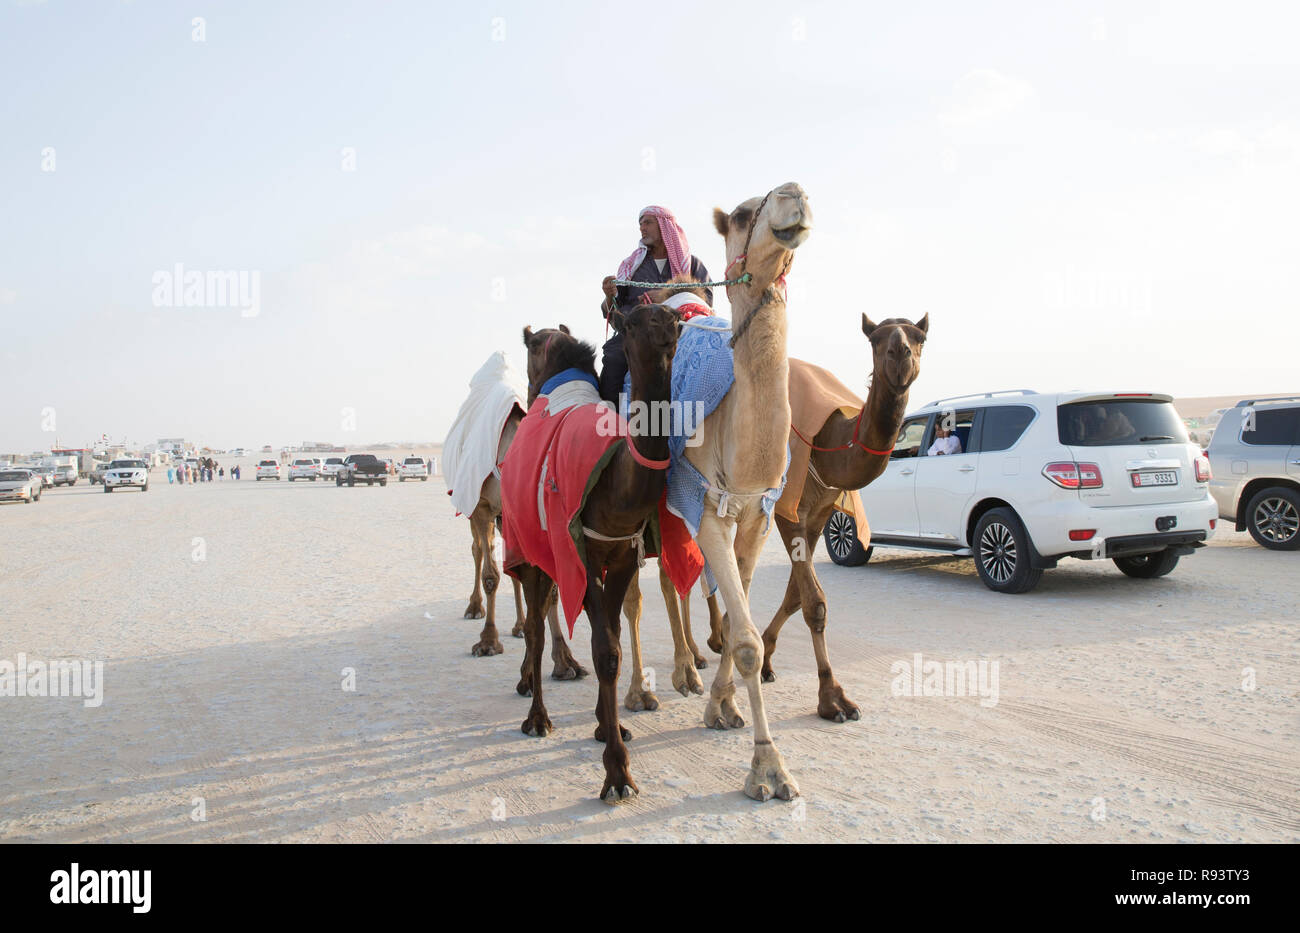 Madinat Zayed, United Arab Emirates, December 15th, 2017: arab man with his camel in a desert - Stock Image